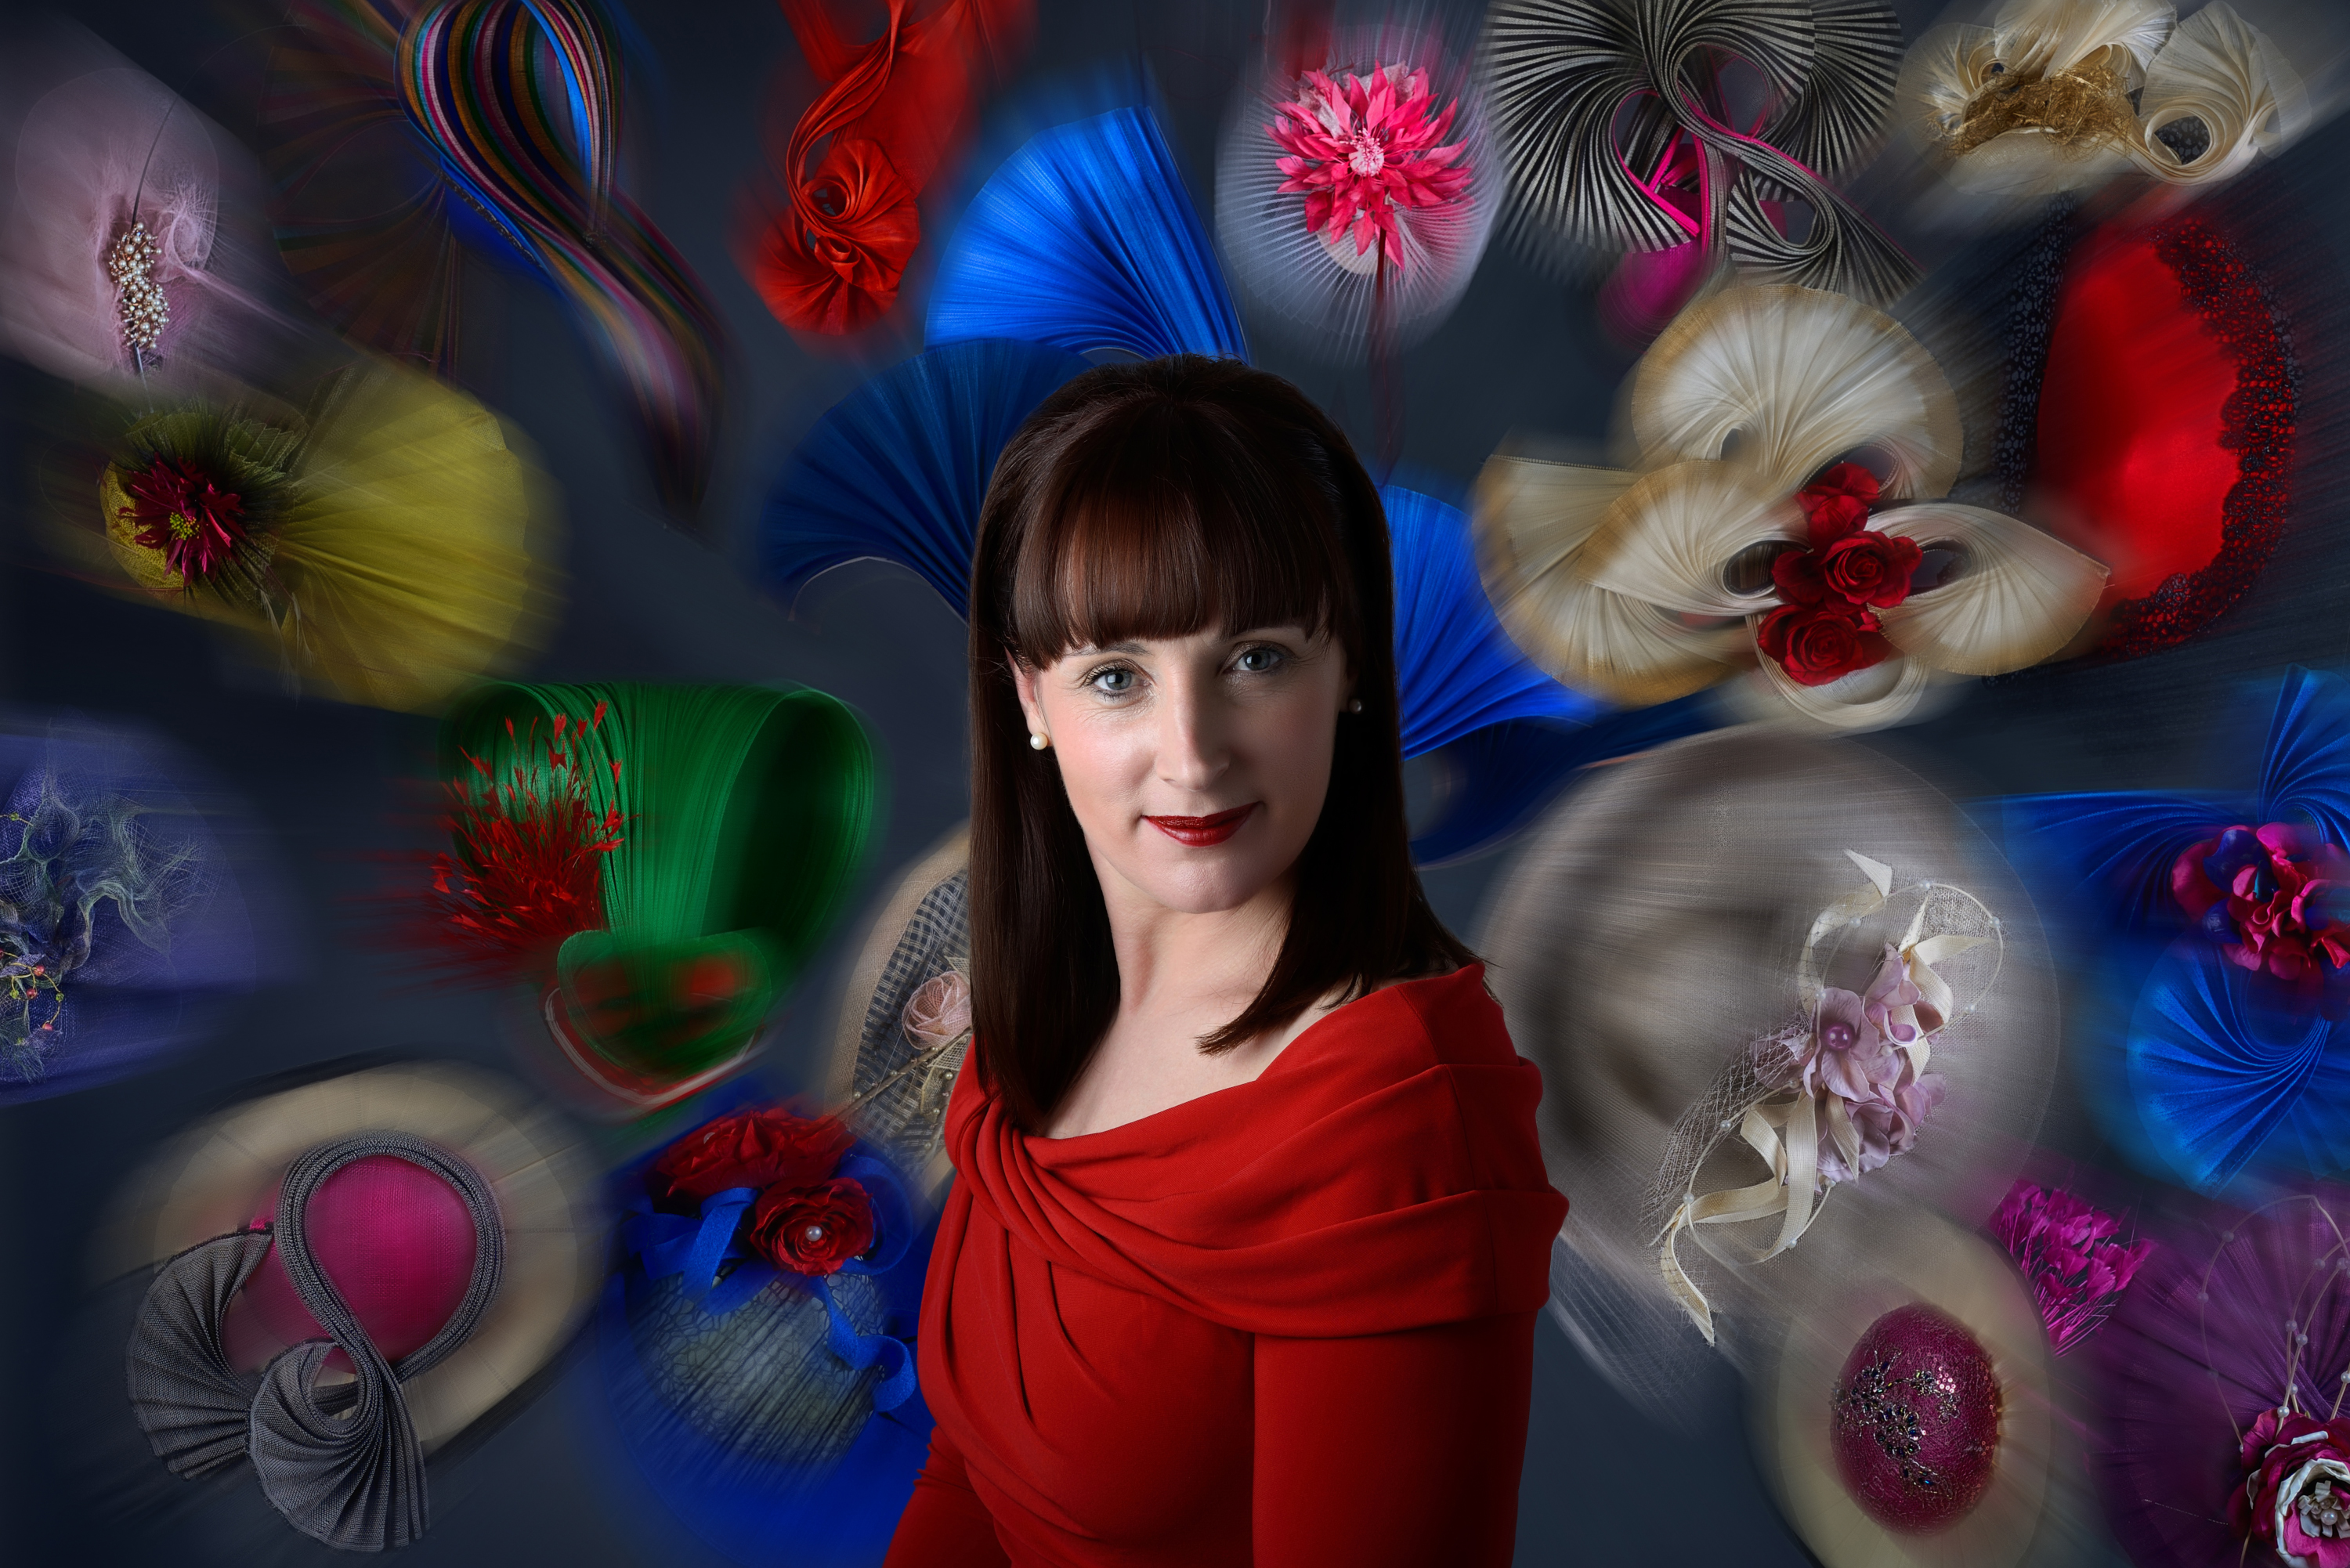 Caithriona King Portrait Galway